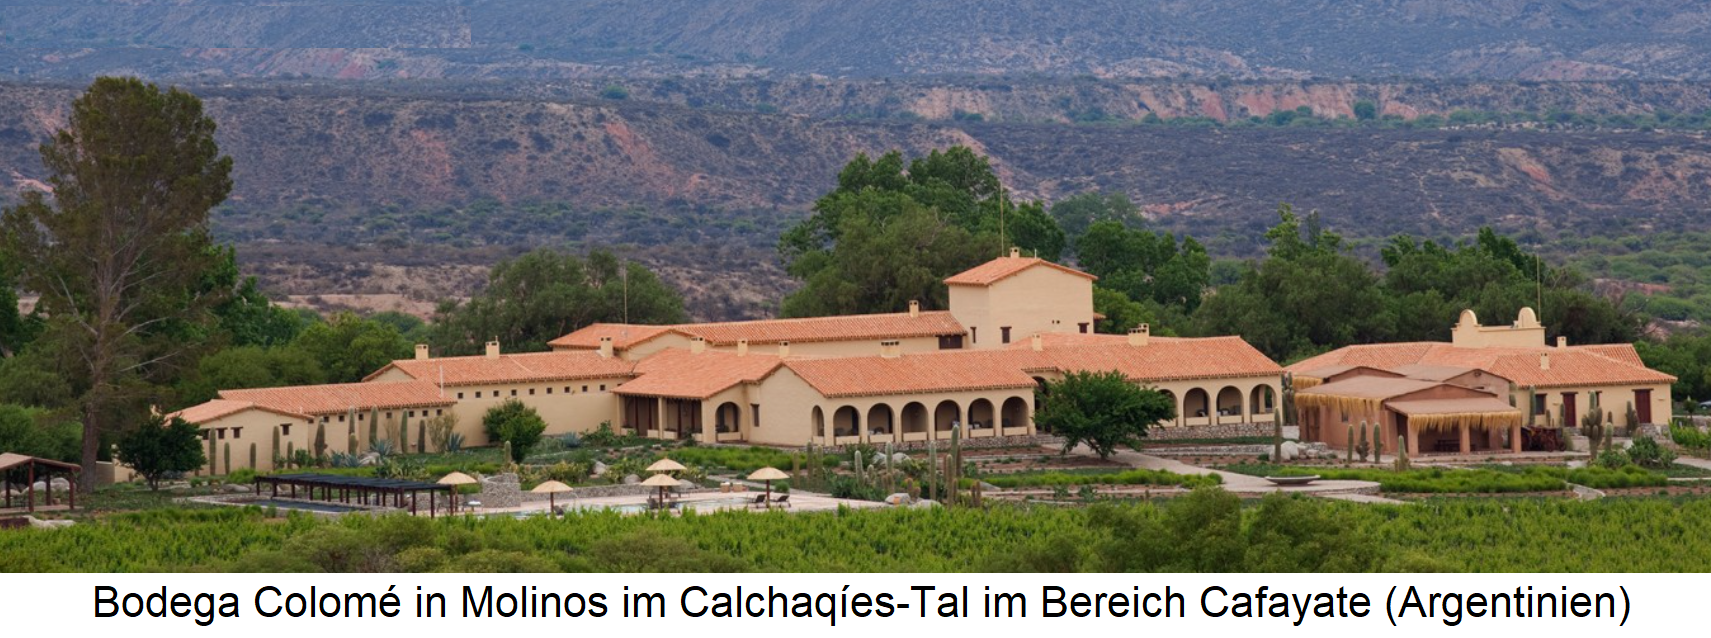 Bodega Colomé in Molinos in the Calchaqíes Valley in the Cafayate area in the Salta region of Argentina